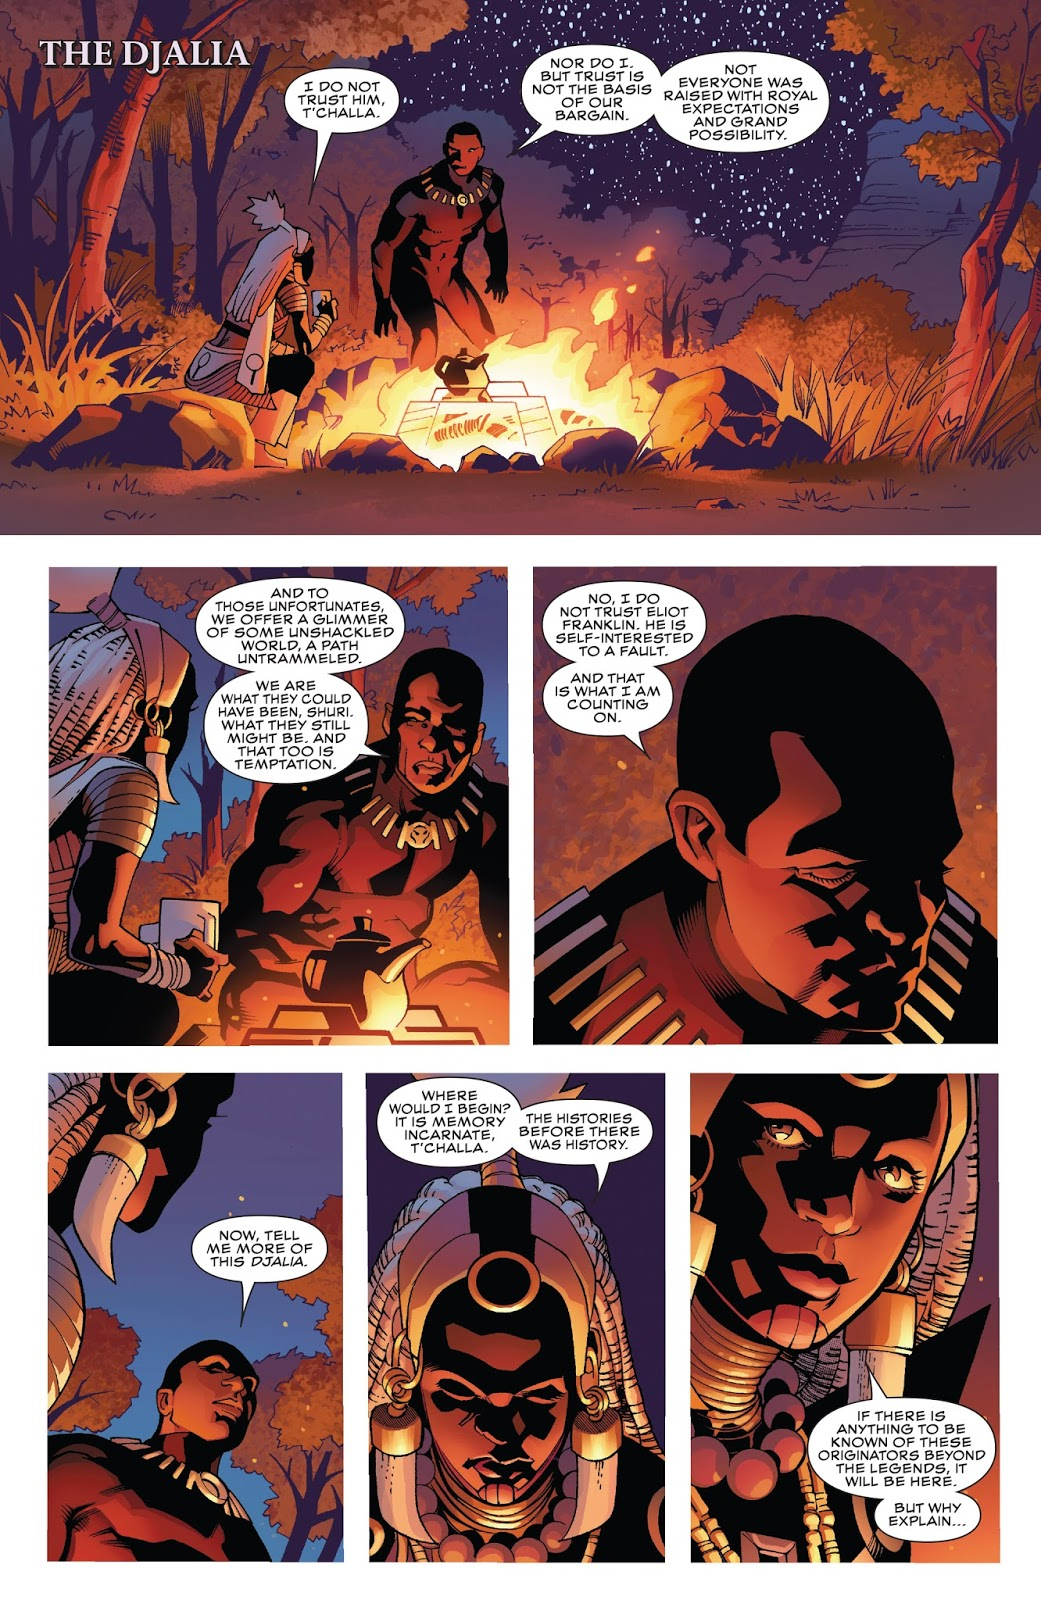 Black Panther Avengers of the New World review